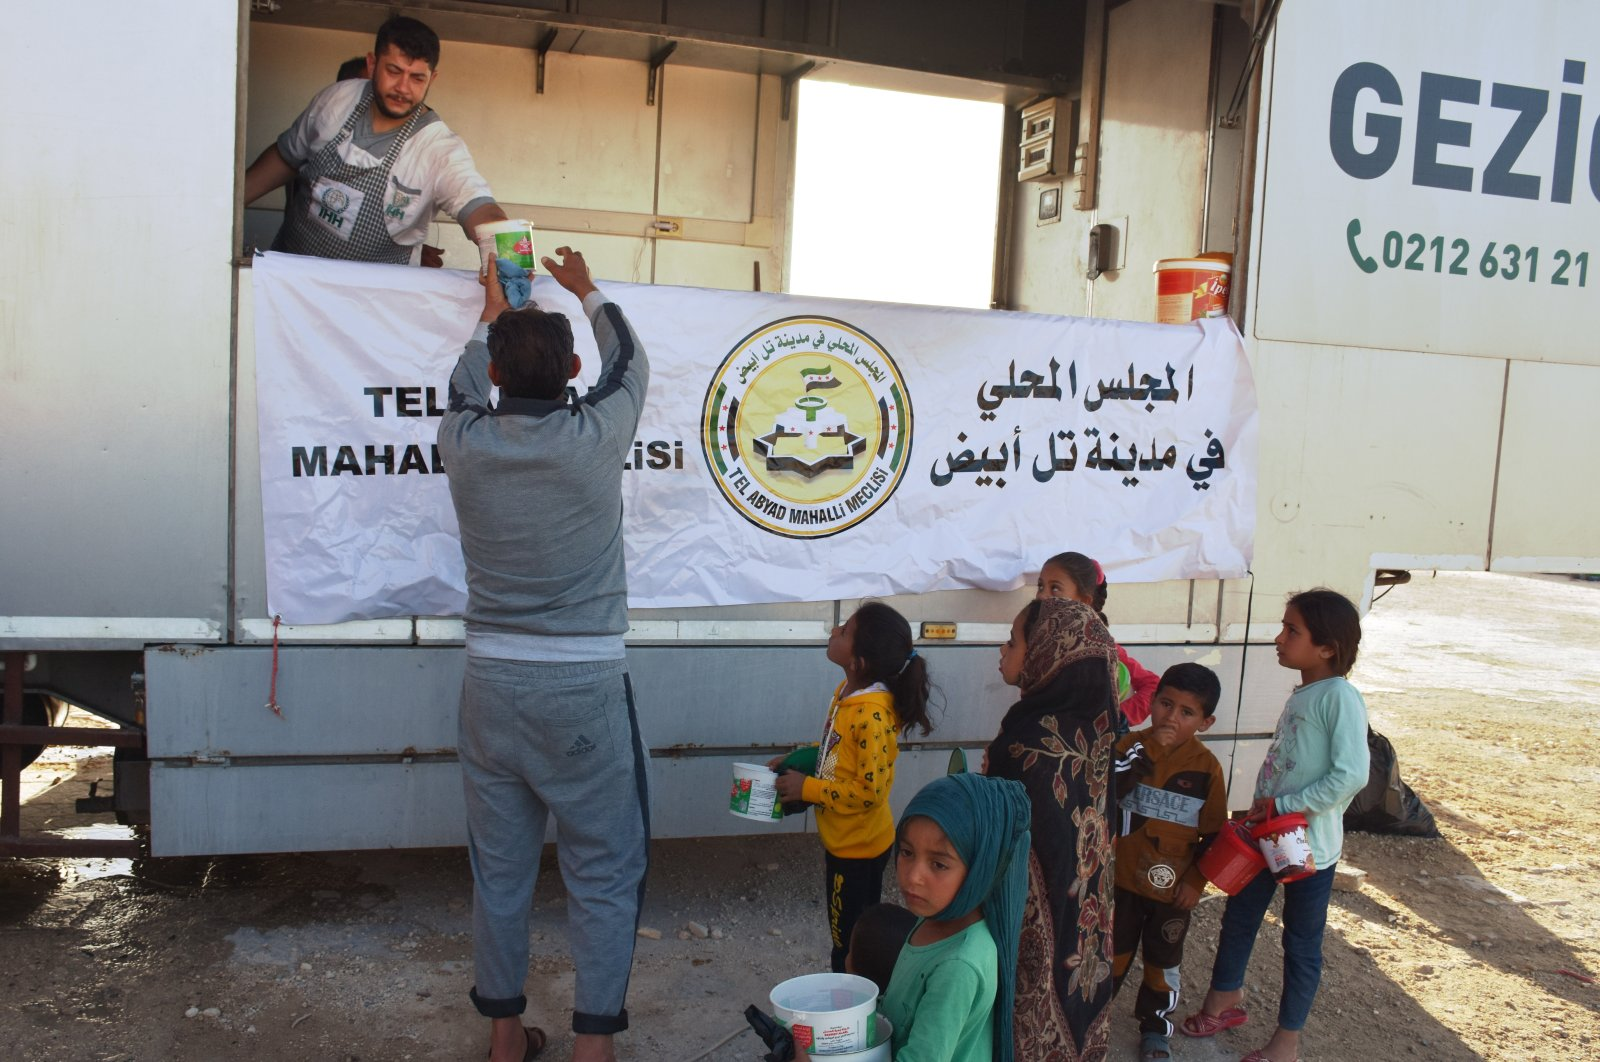 A mobile kitchen distributed iftar meal in northern Syria's Tal Abyad, May 3, 2021. (AA Photo)